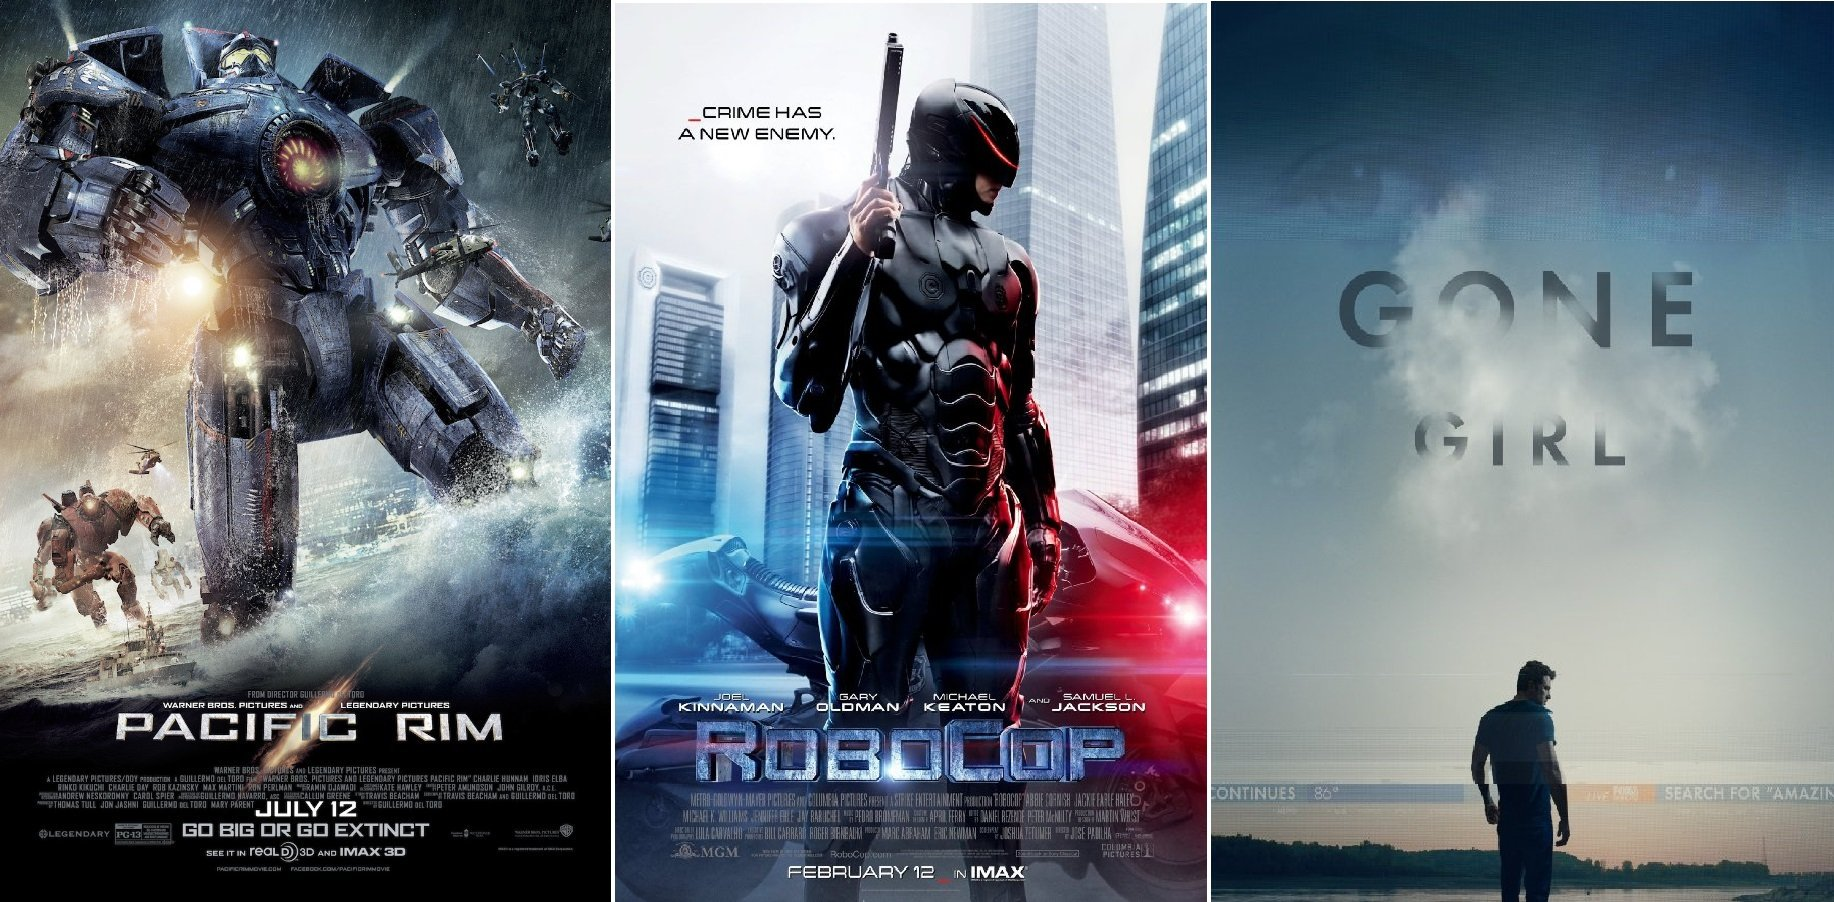 Киномарафон старика Сарказмо #1: Gone Girl / Robocop (2014) / Pacific Rim - Изображение 1